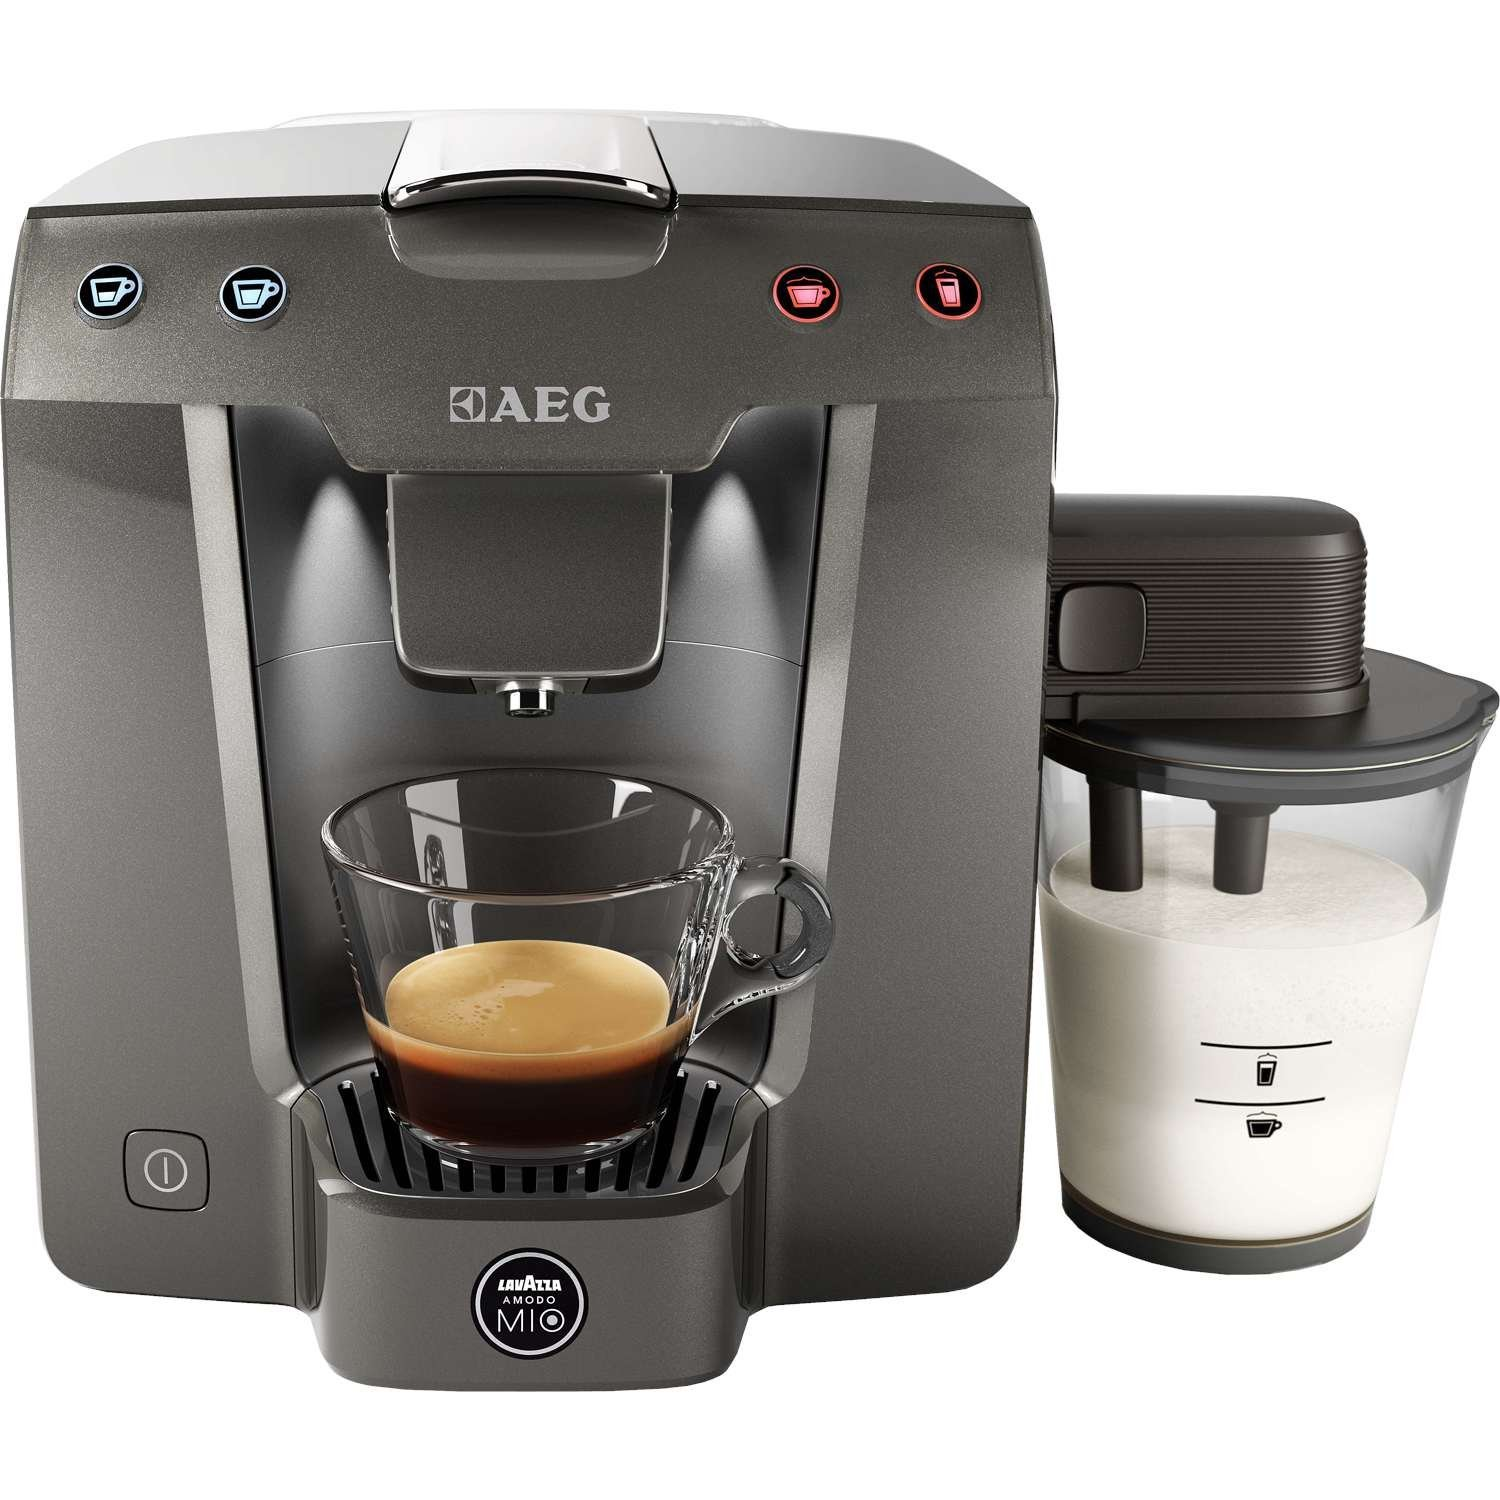 How To Use Lavazza Coffee Maker : AEG Lavazza A Modo Mio Favola Cappuccino Pod Machine